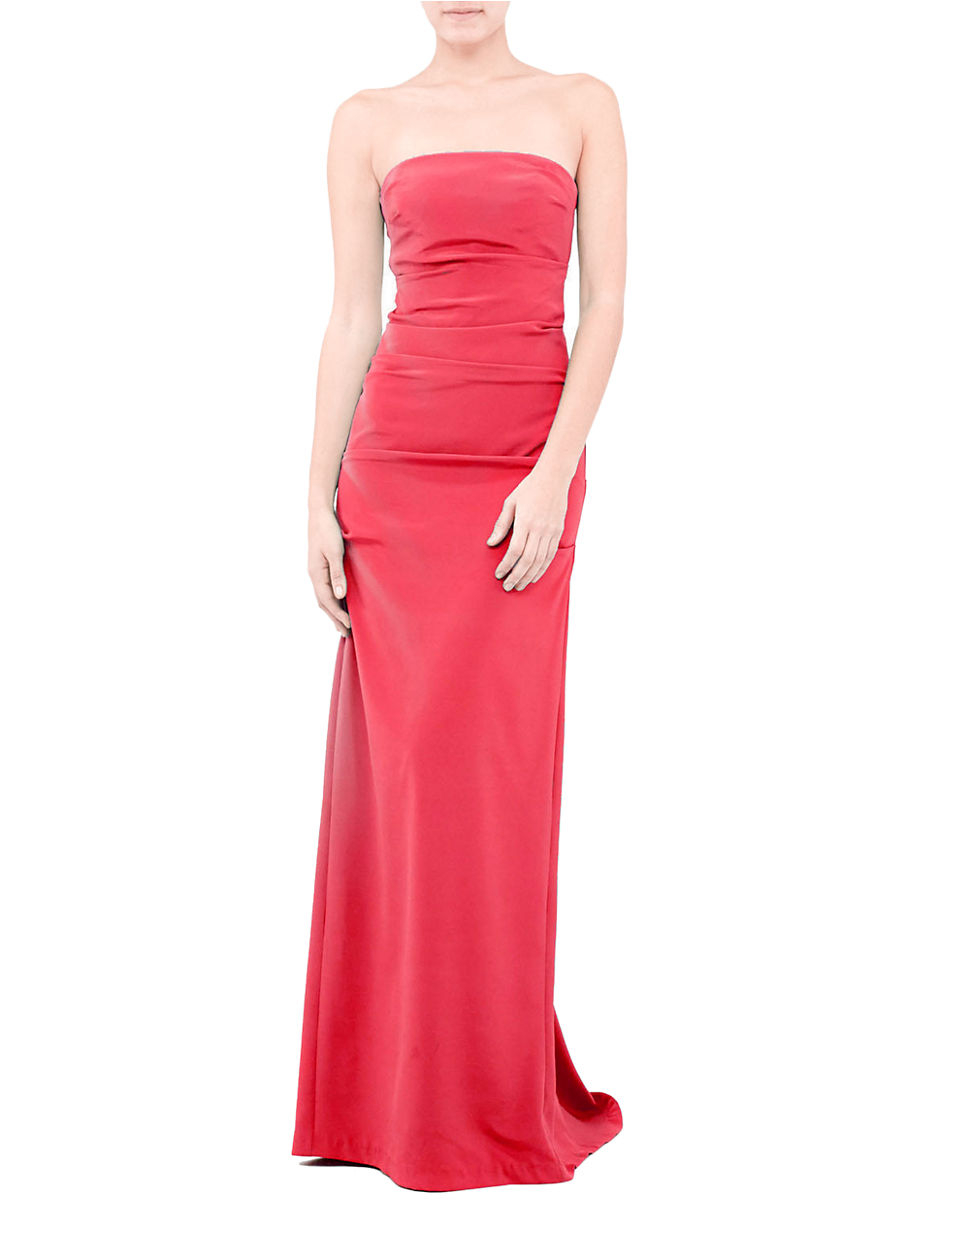 Lyst - Nicole Miller Tuck Strapless Gown in Red